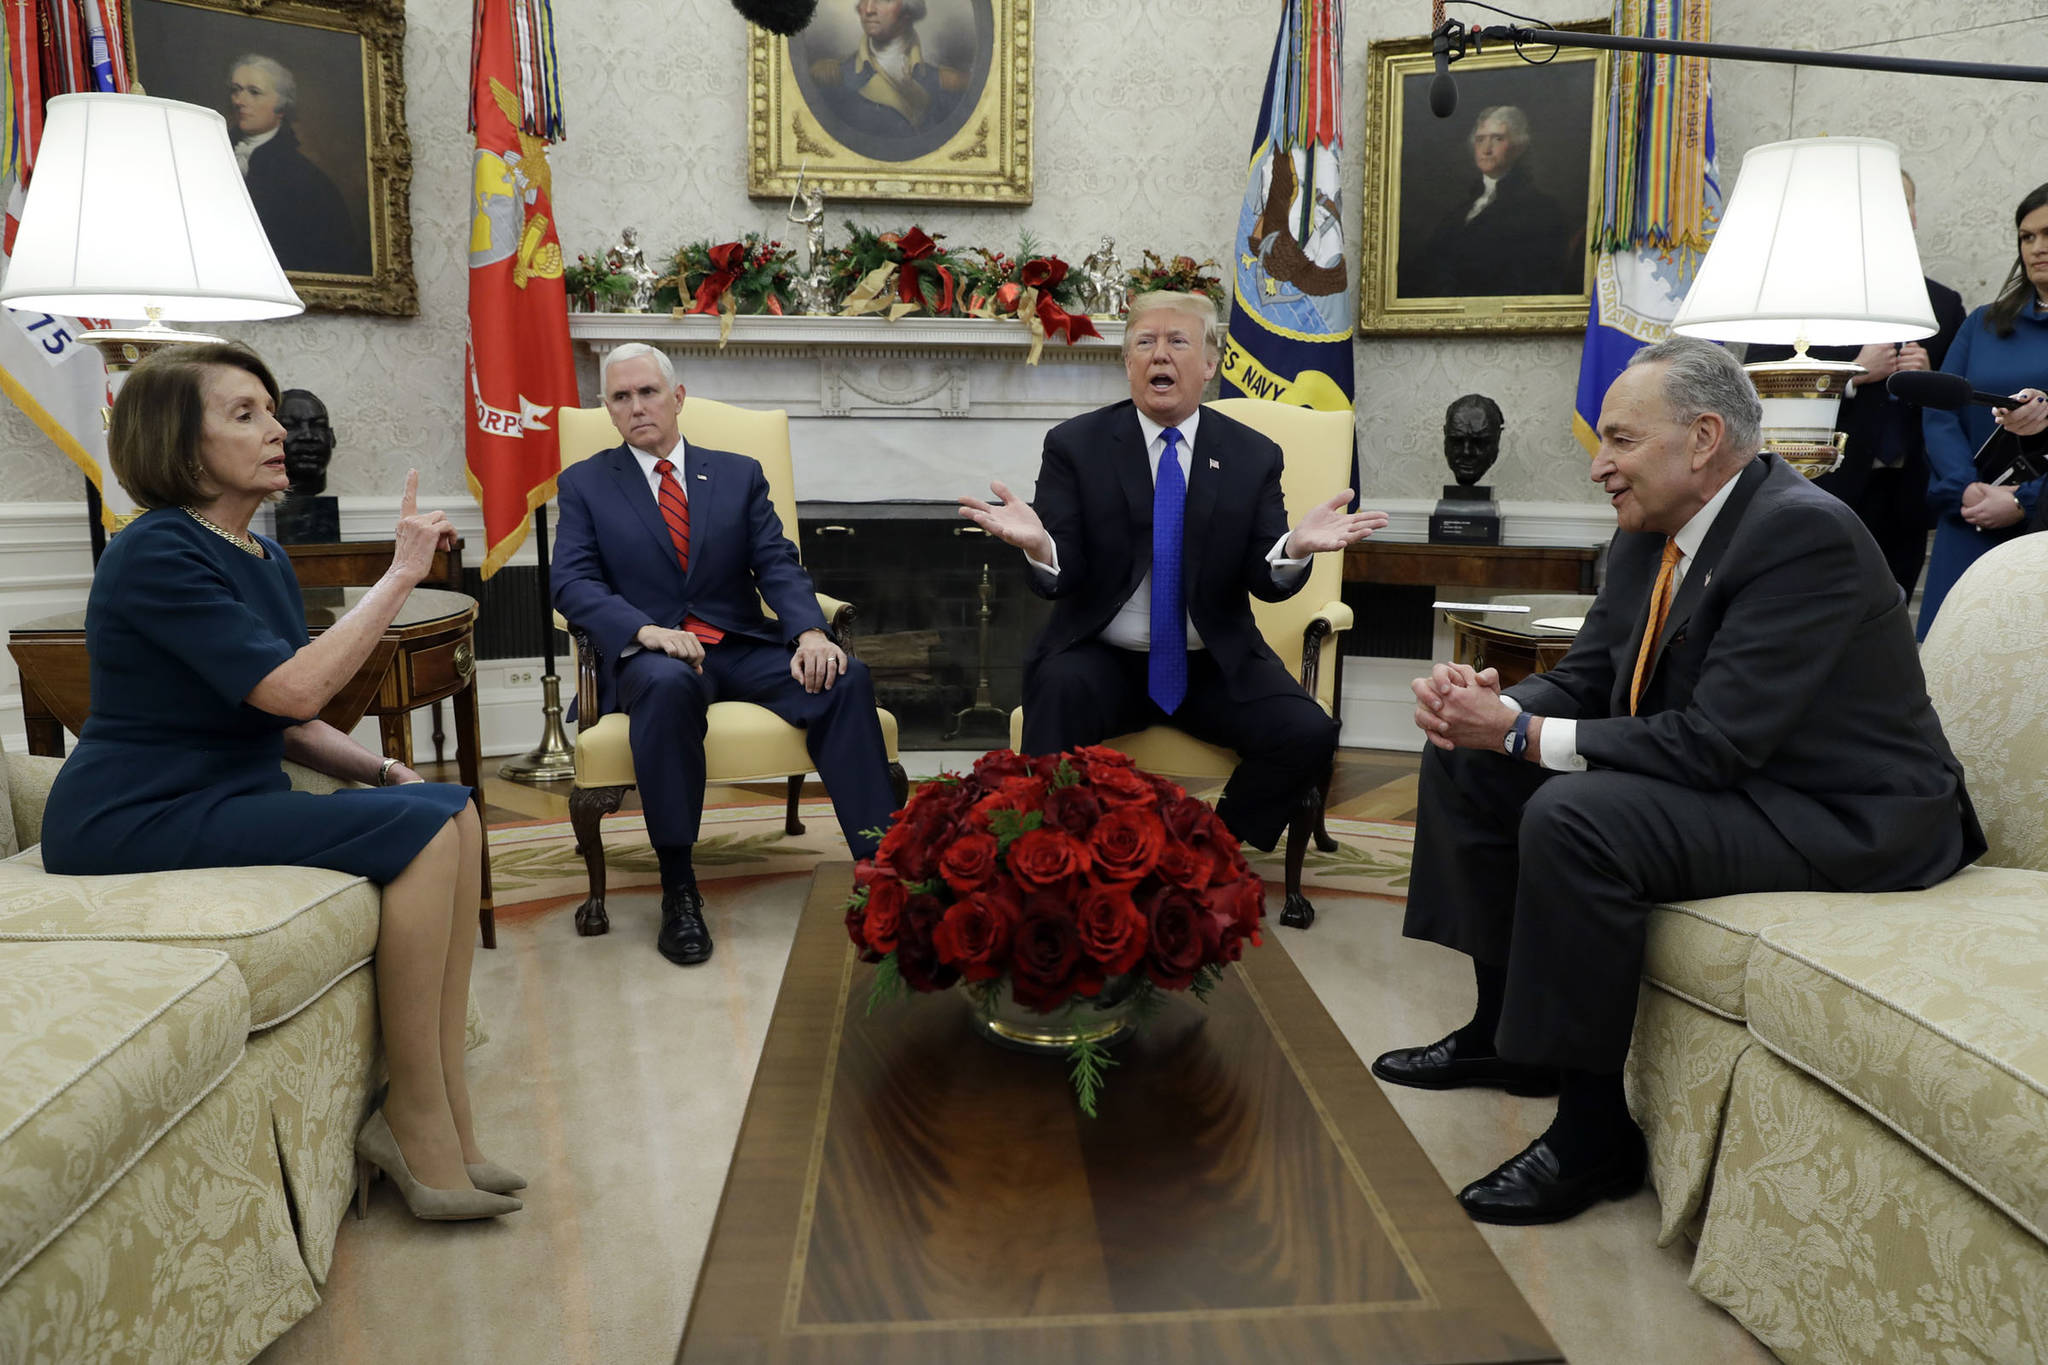 President Donald Trump and Vice President Mike Pence, second left, meet with Senate Minority Leader Chuck Schumer, D-N.Y., right, and House Minority Leader Nancy Pelosi, D-Calif., in the Oval Office of the White House on Tuesday, Dec. 11, 2018 in Washington, D.C. (Evan Vucci | Associated Press File)